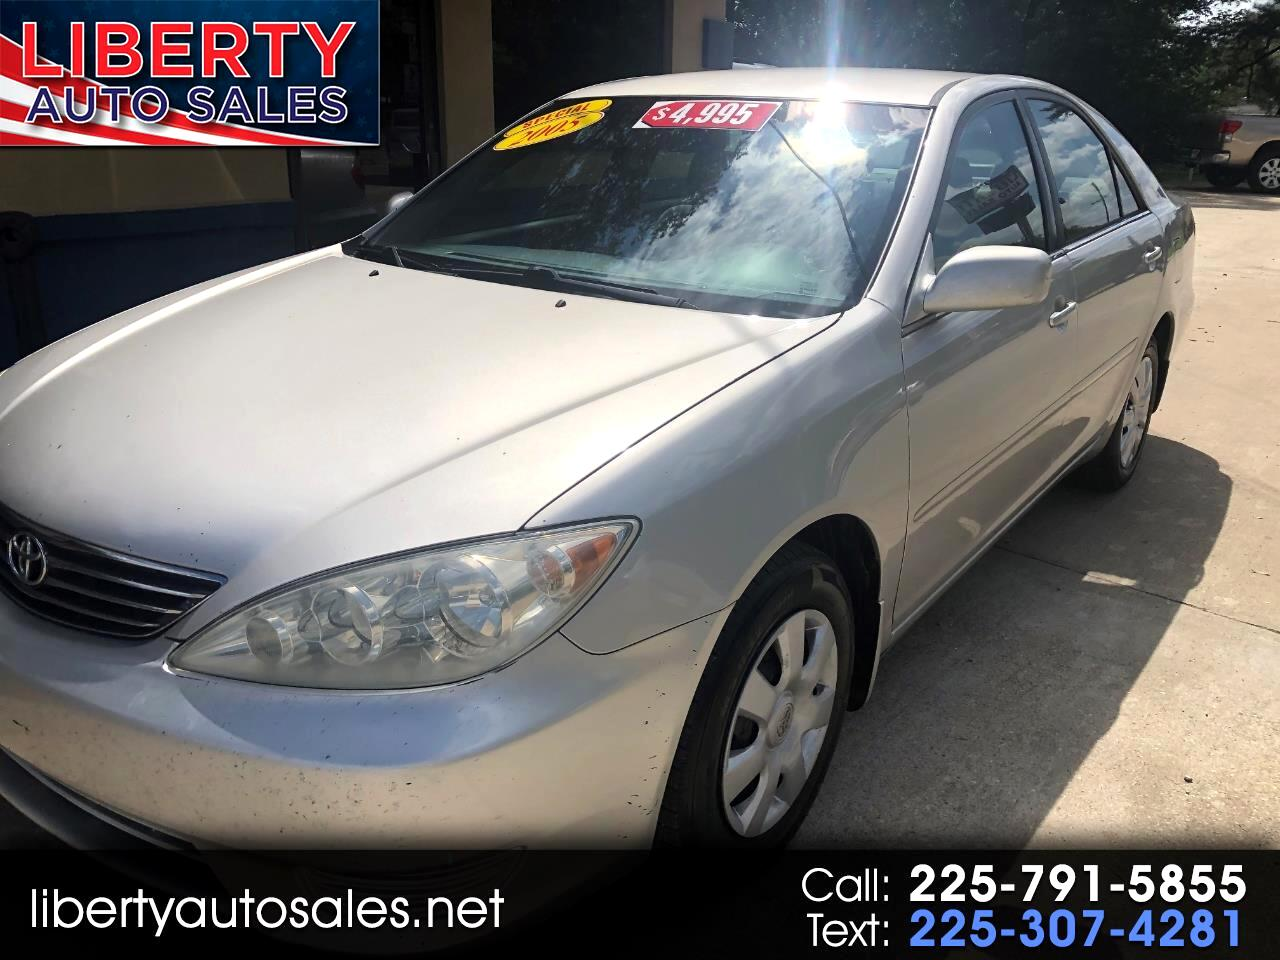 Toyota Camry 4dr Sdn LE Auto (Natl) 2005